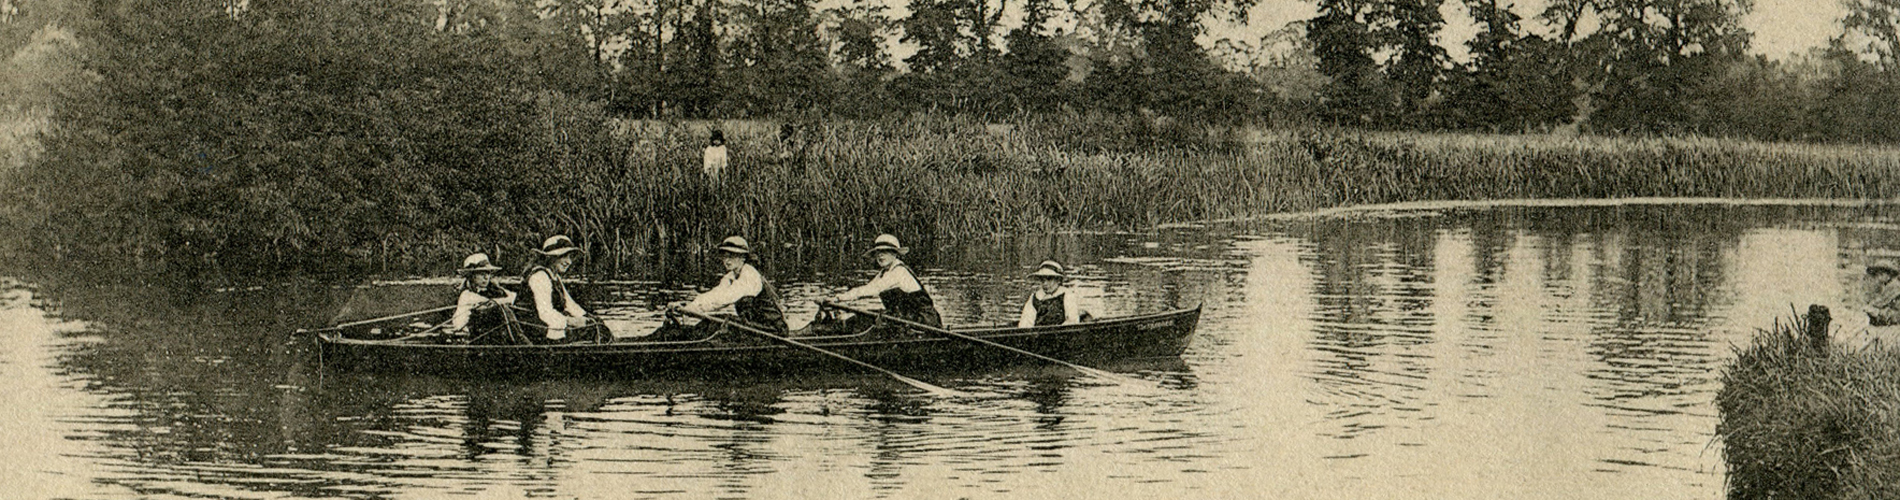 School Boat on the Cherwell